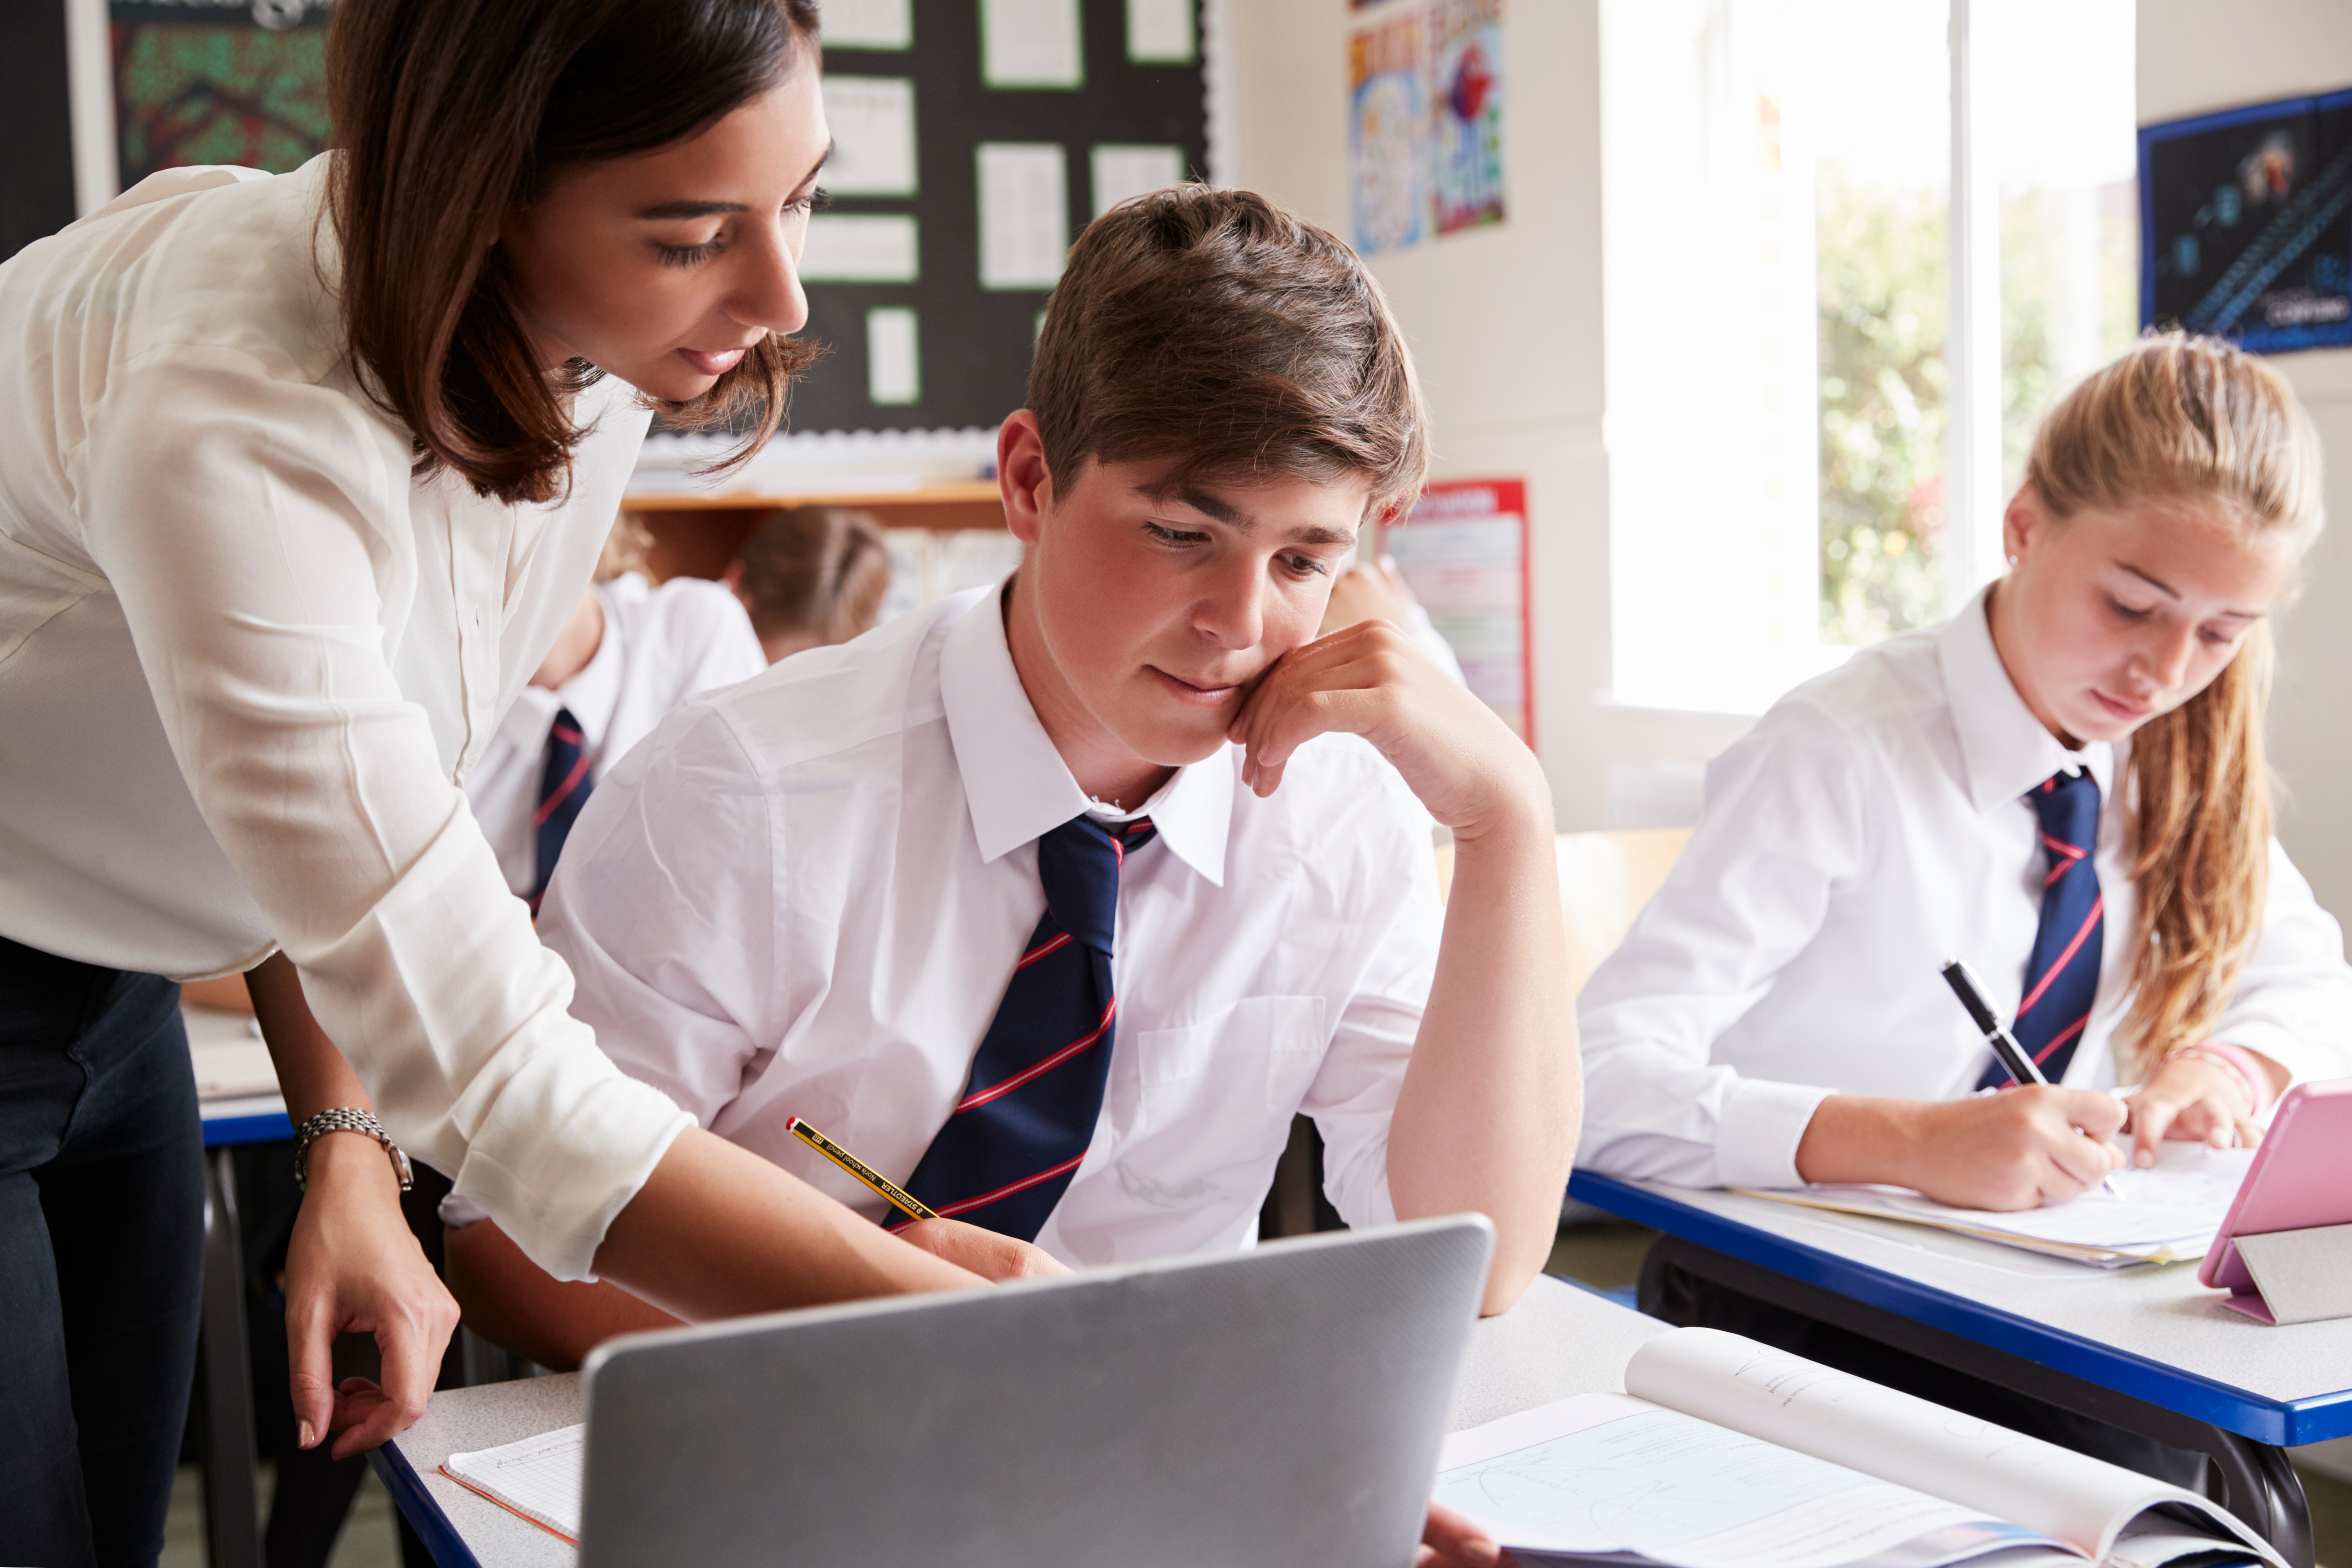 teacher helping student with their work